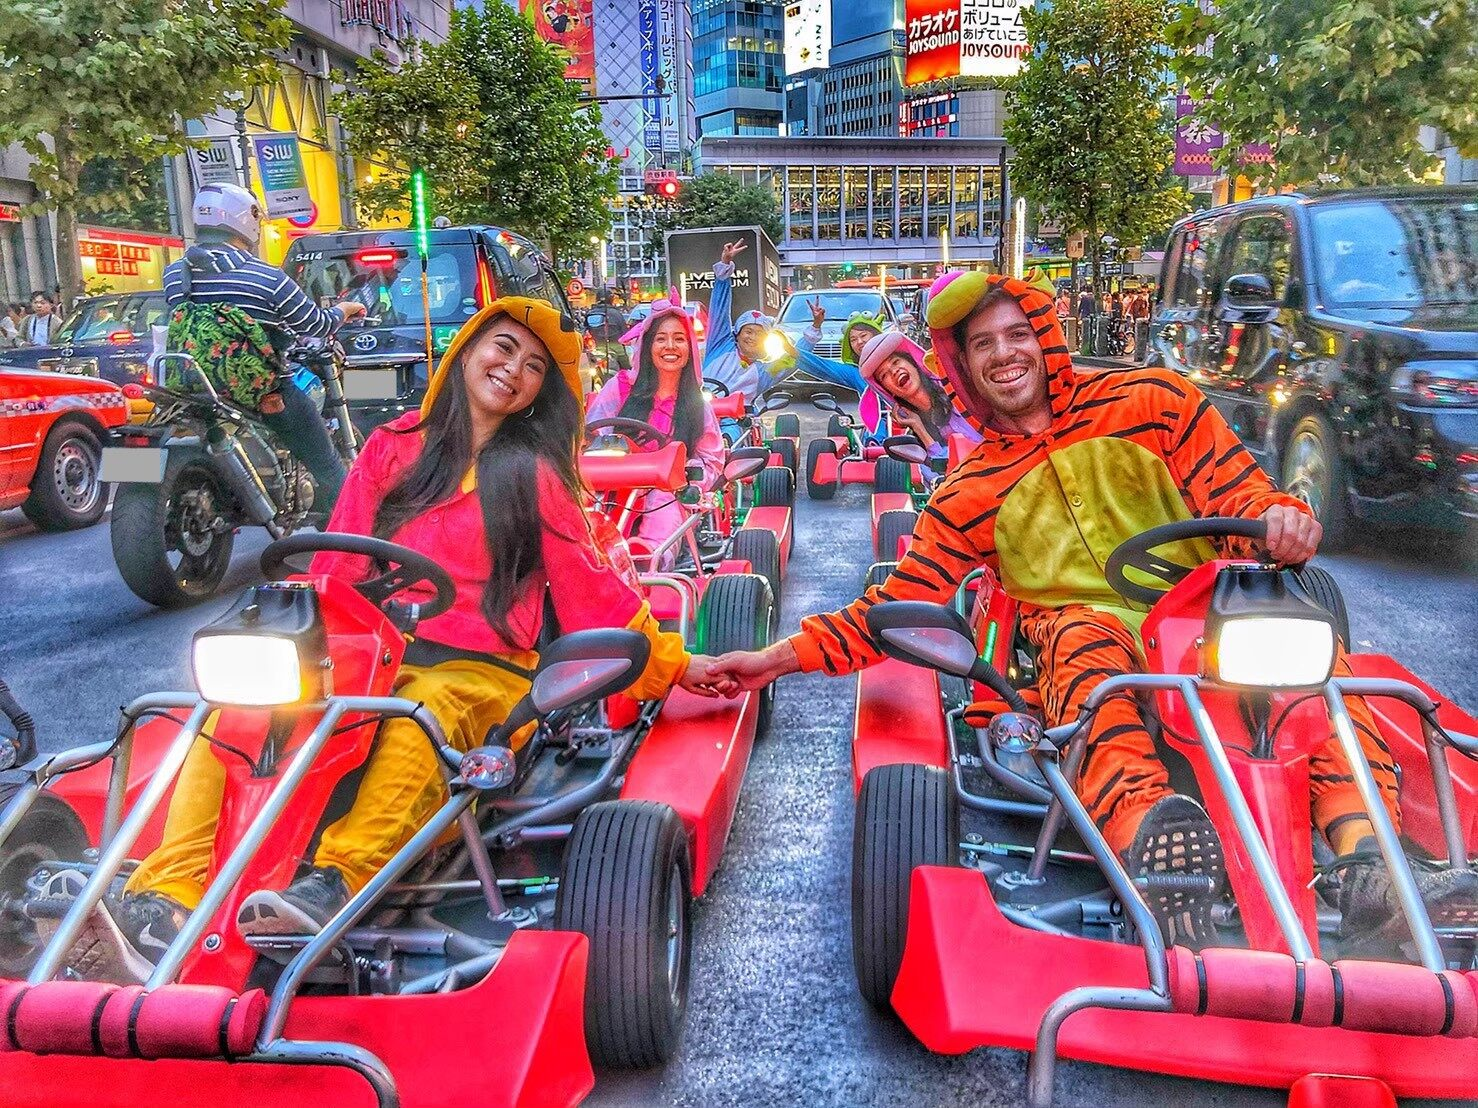 Public Road Go-Kart Tour 1 Hour Course from Shibuya!, Things